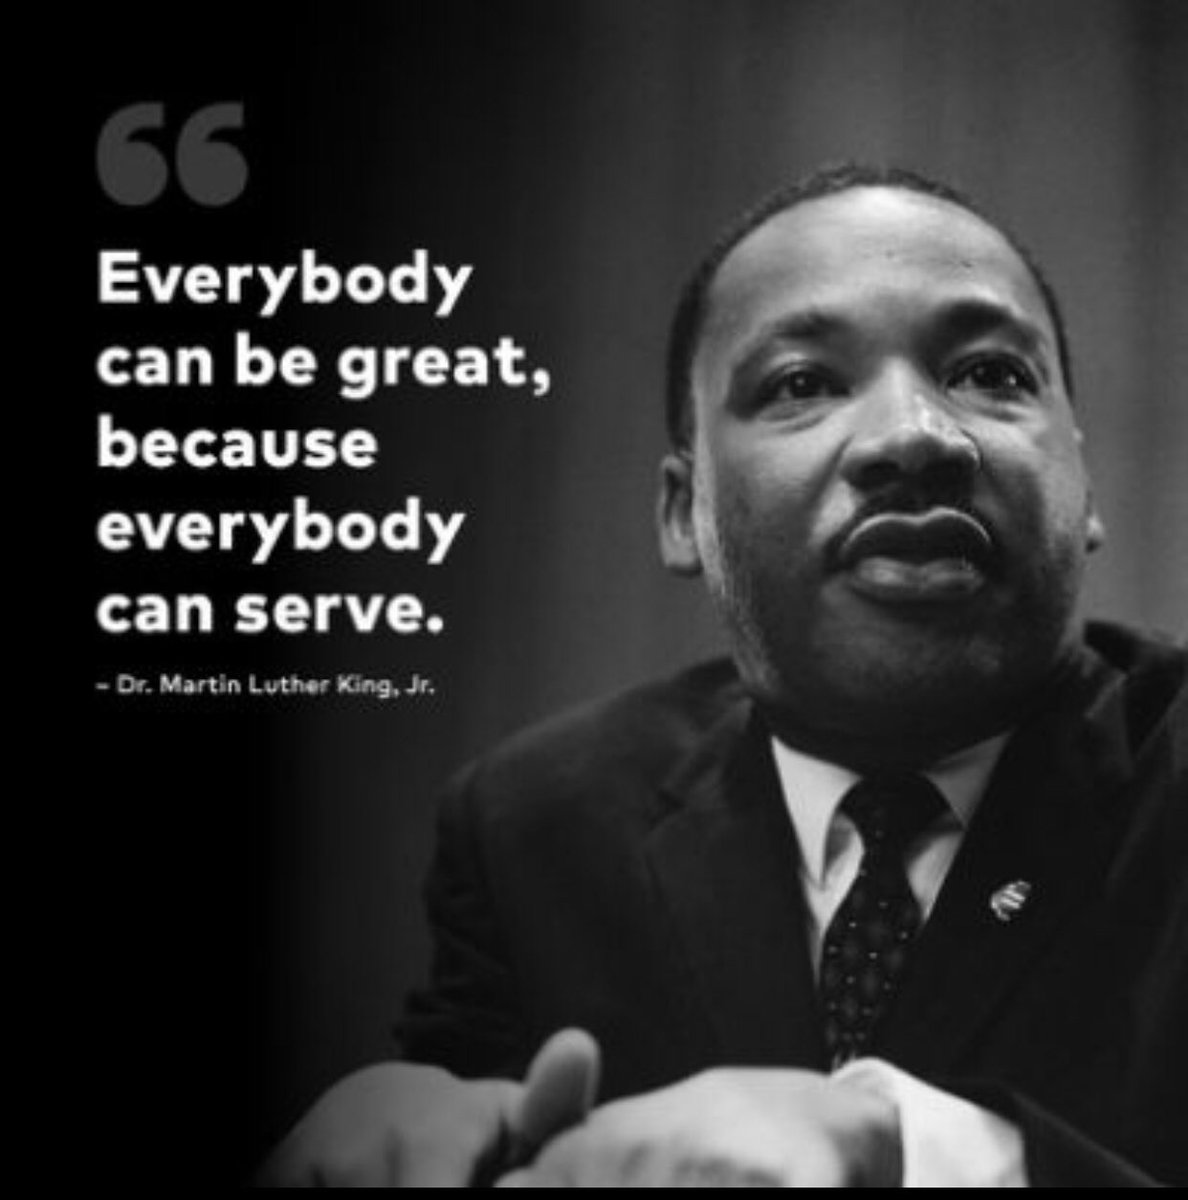 May we continually find ways to help others today and everyday! #MLKDay